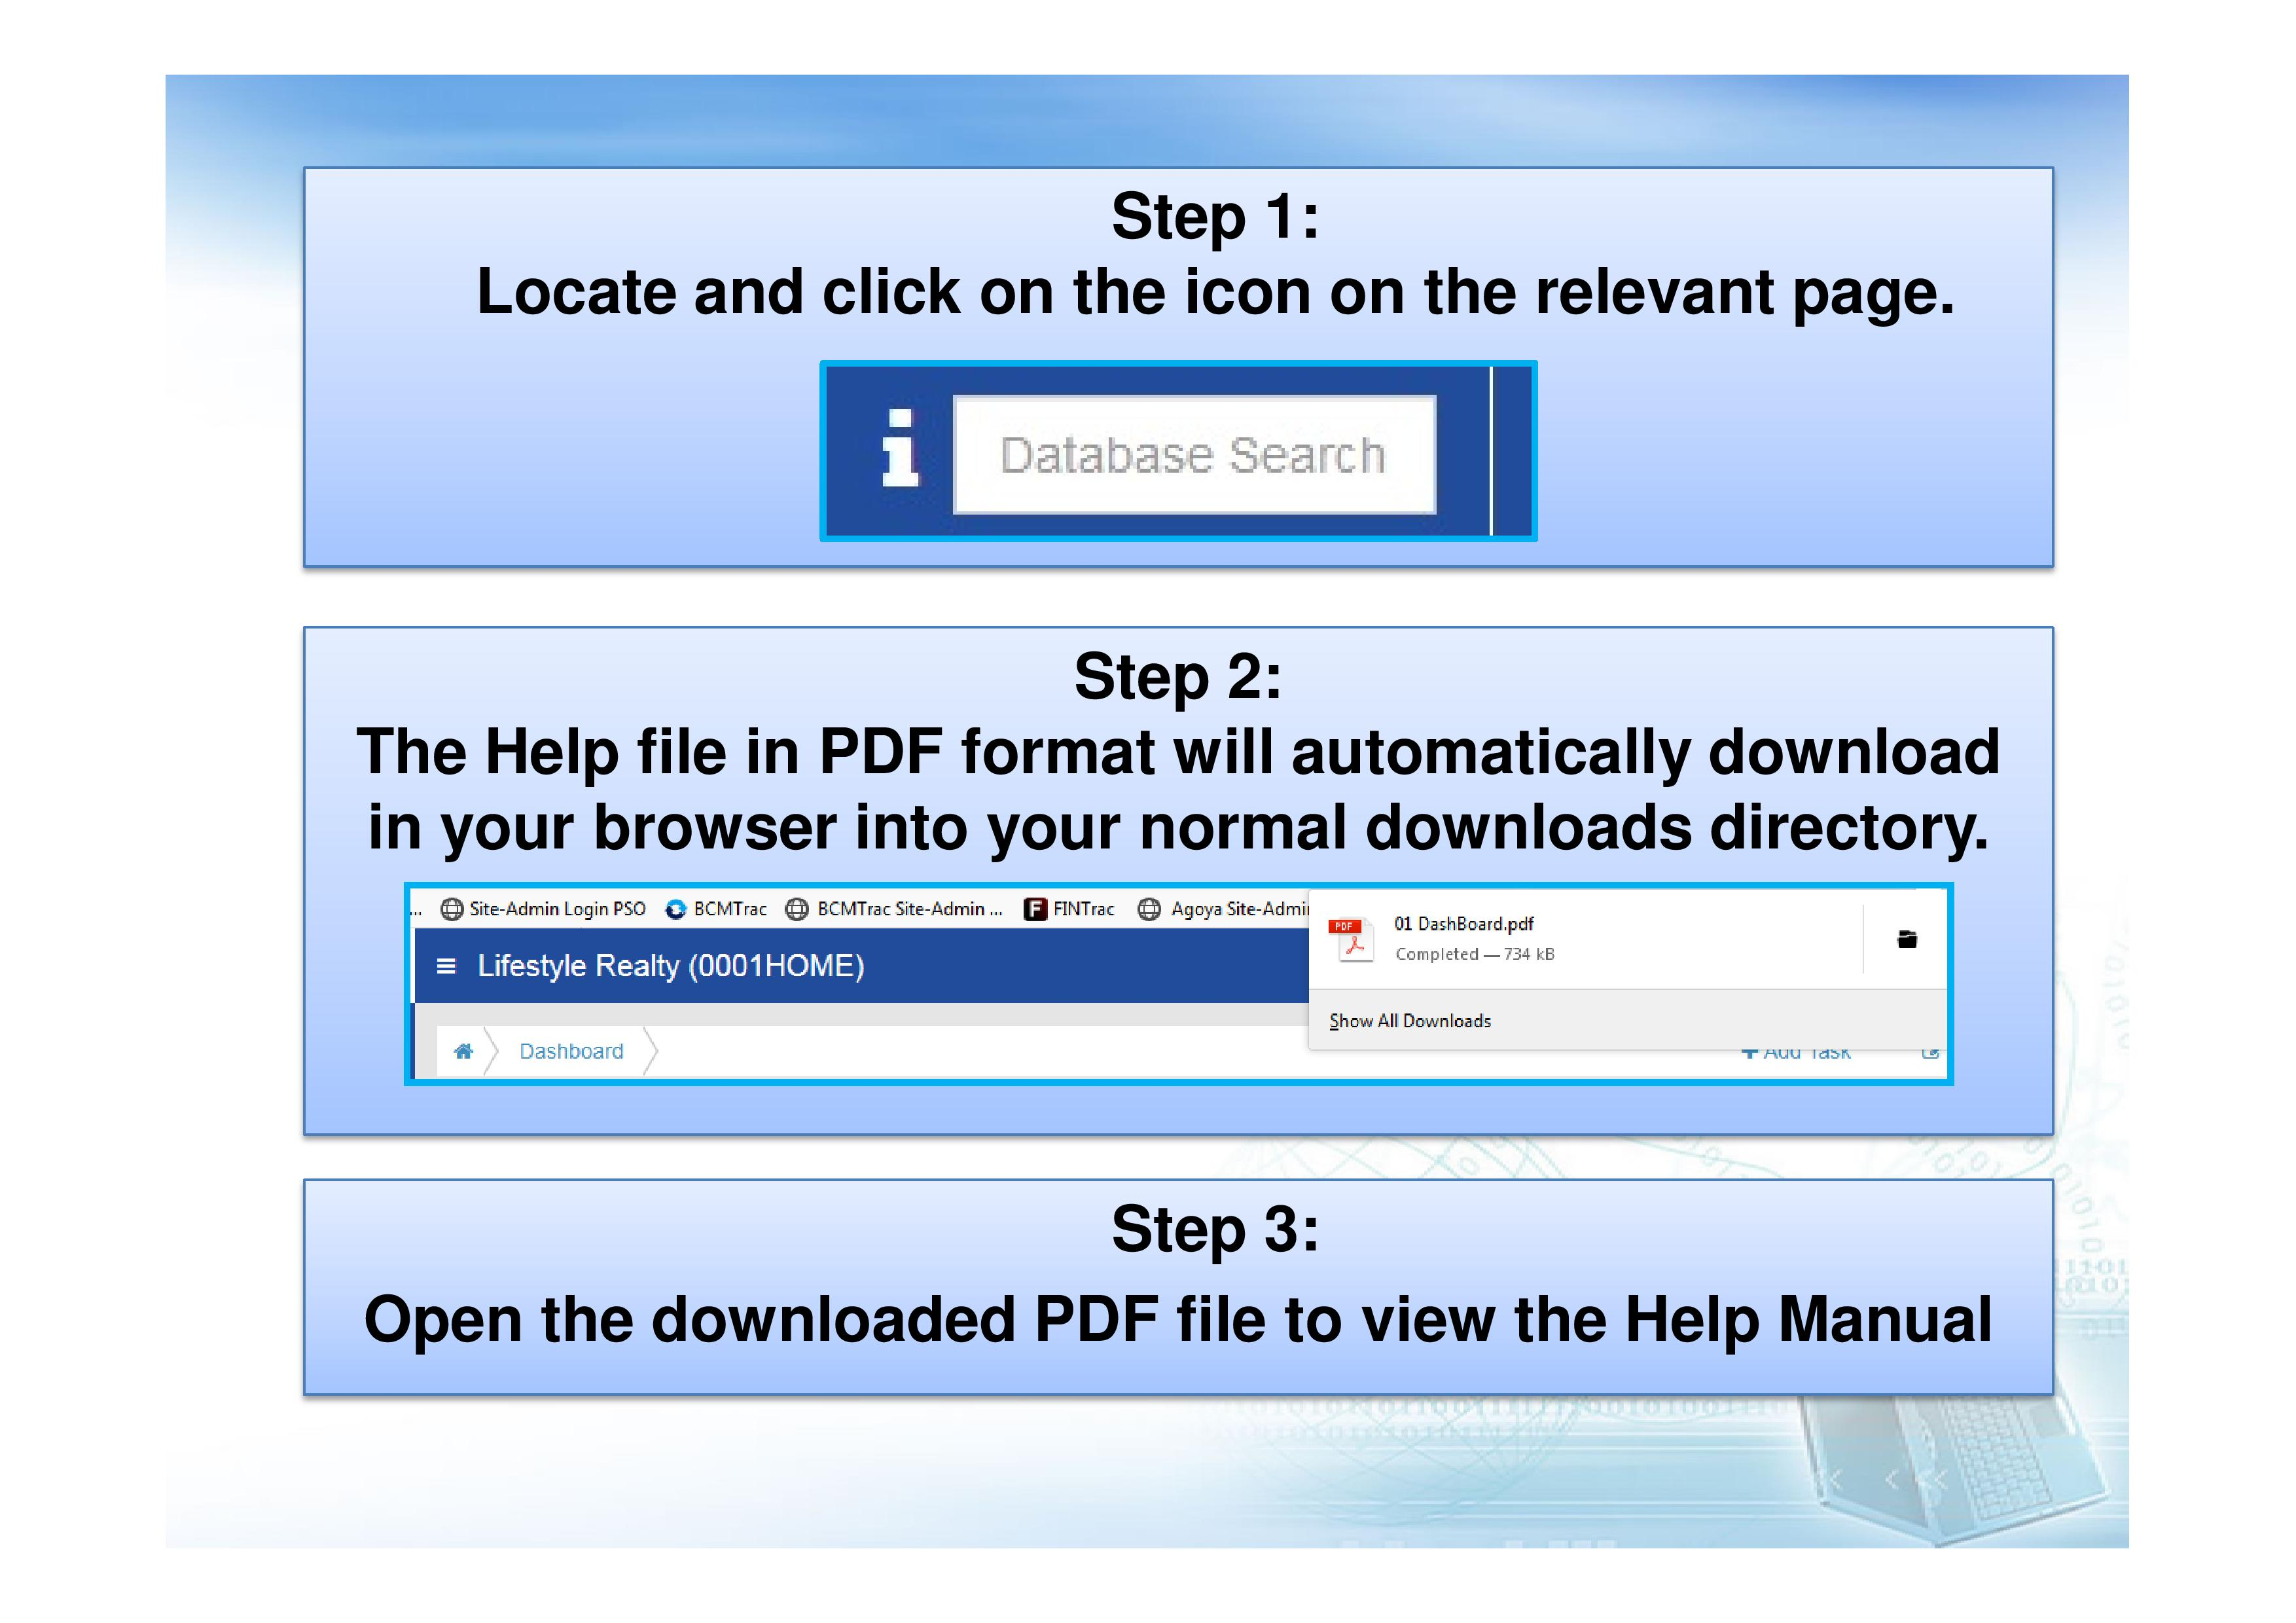 How to access the Online Help Manual?